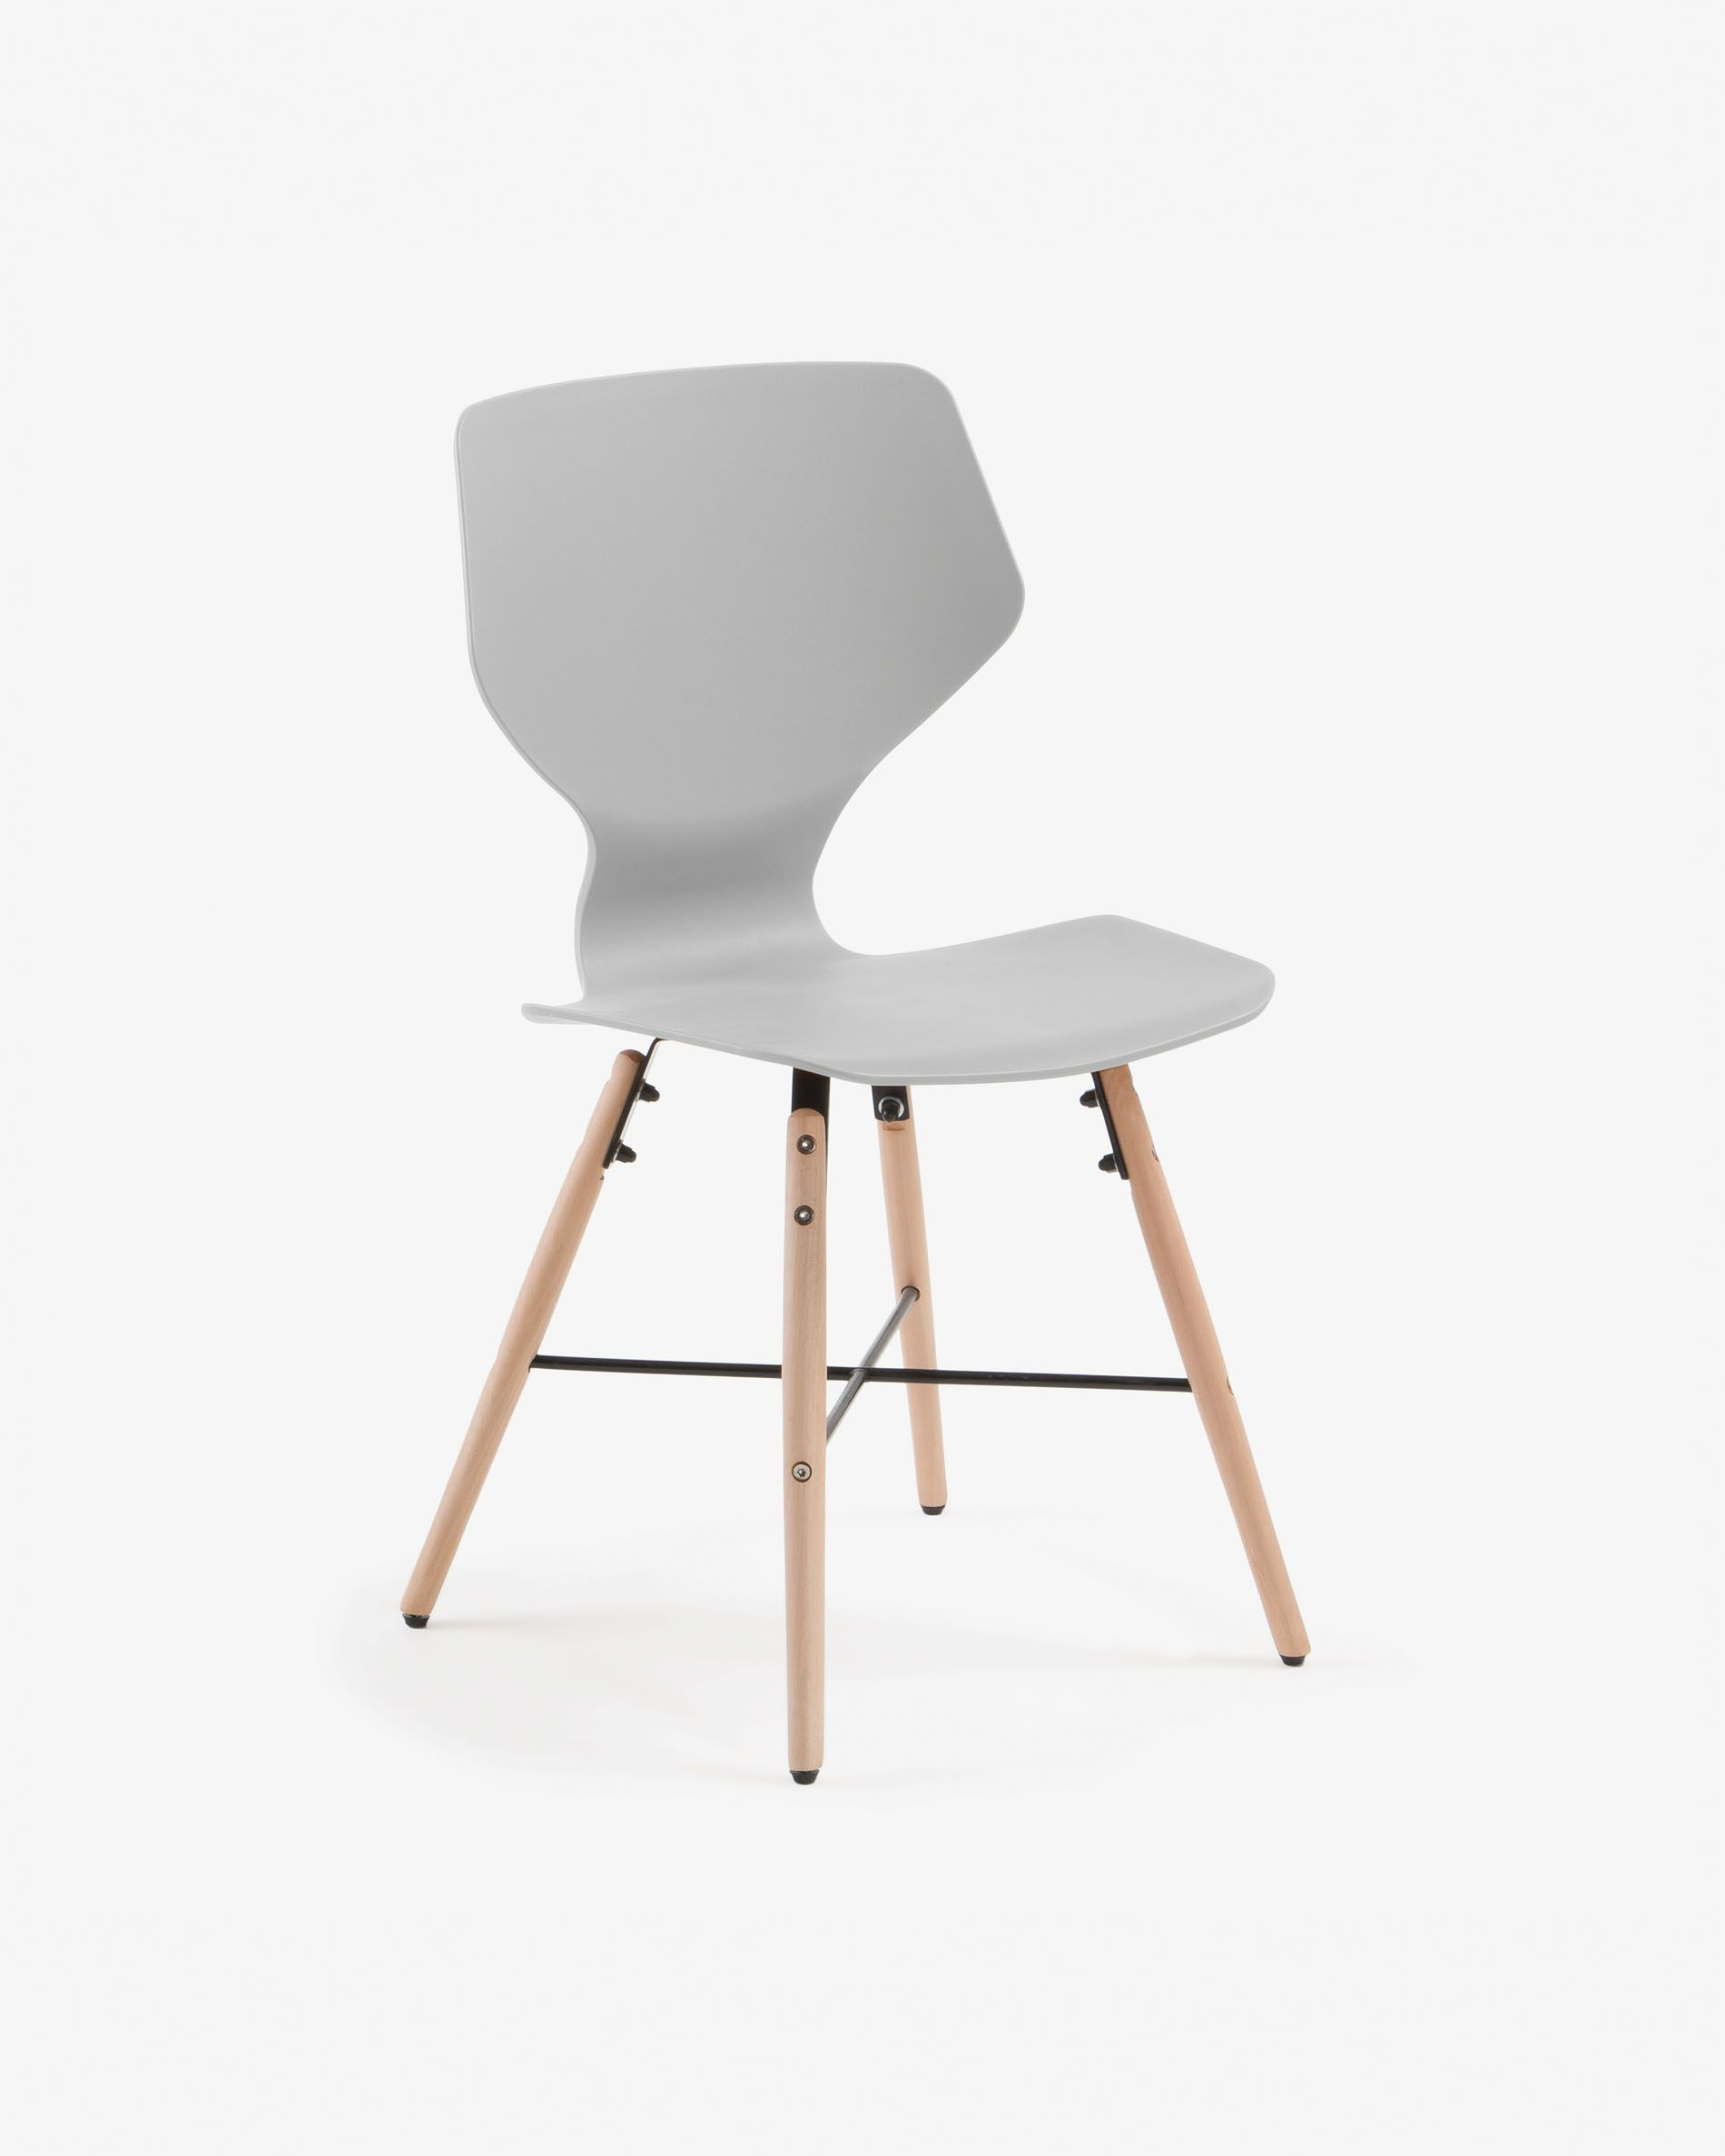 Groovy Grey Witney Chair Kave Home Ncnpc Chair Design For Home Ncnpcorg